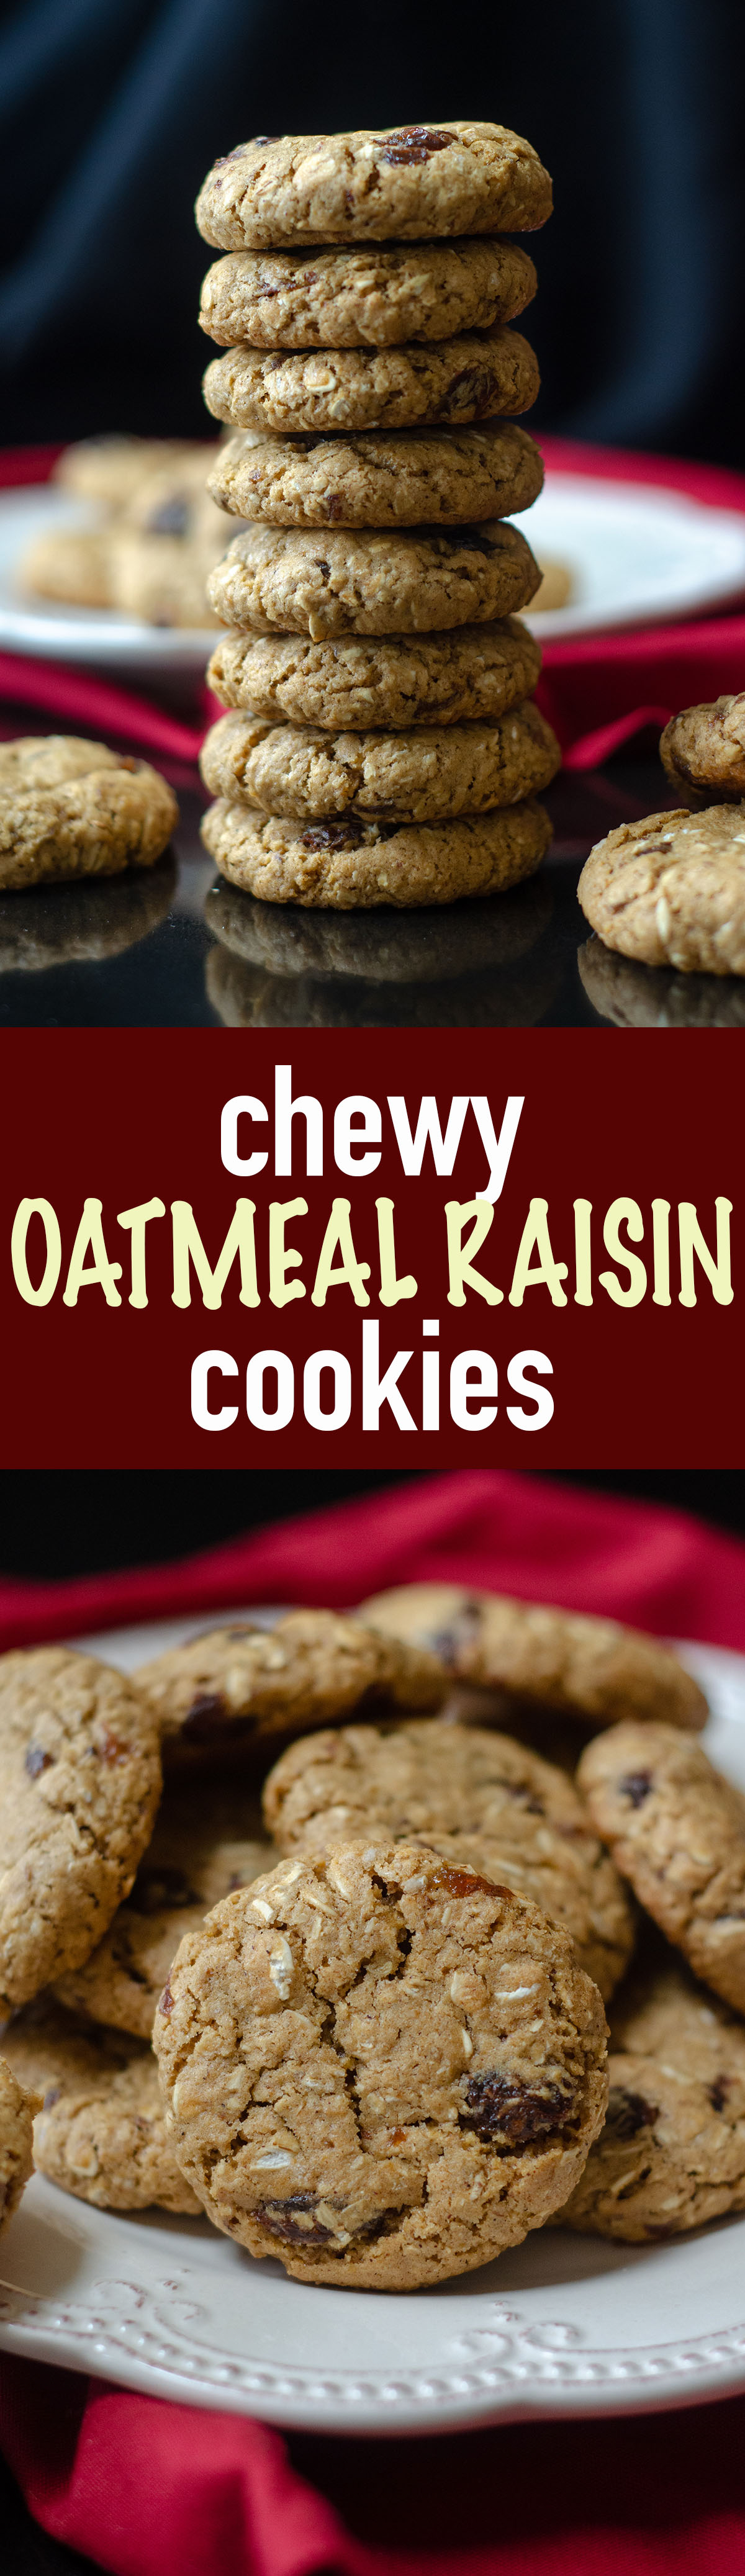 These oatmeal raisin cookies are chewy, buttery, and sweetened with brown sugar and molasses.